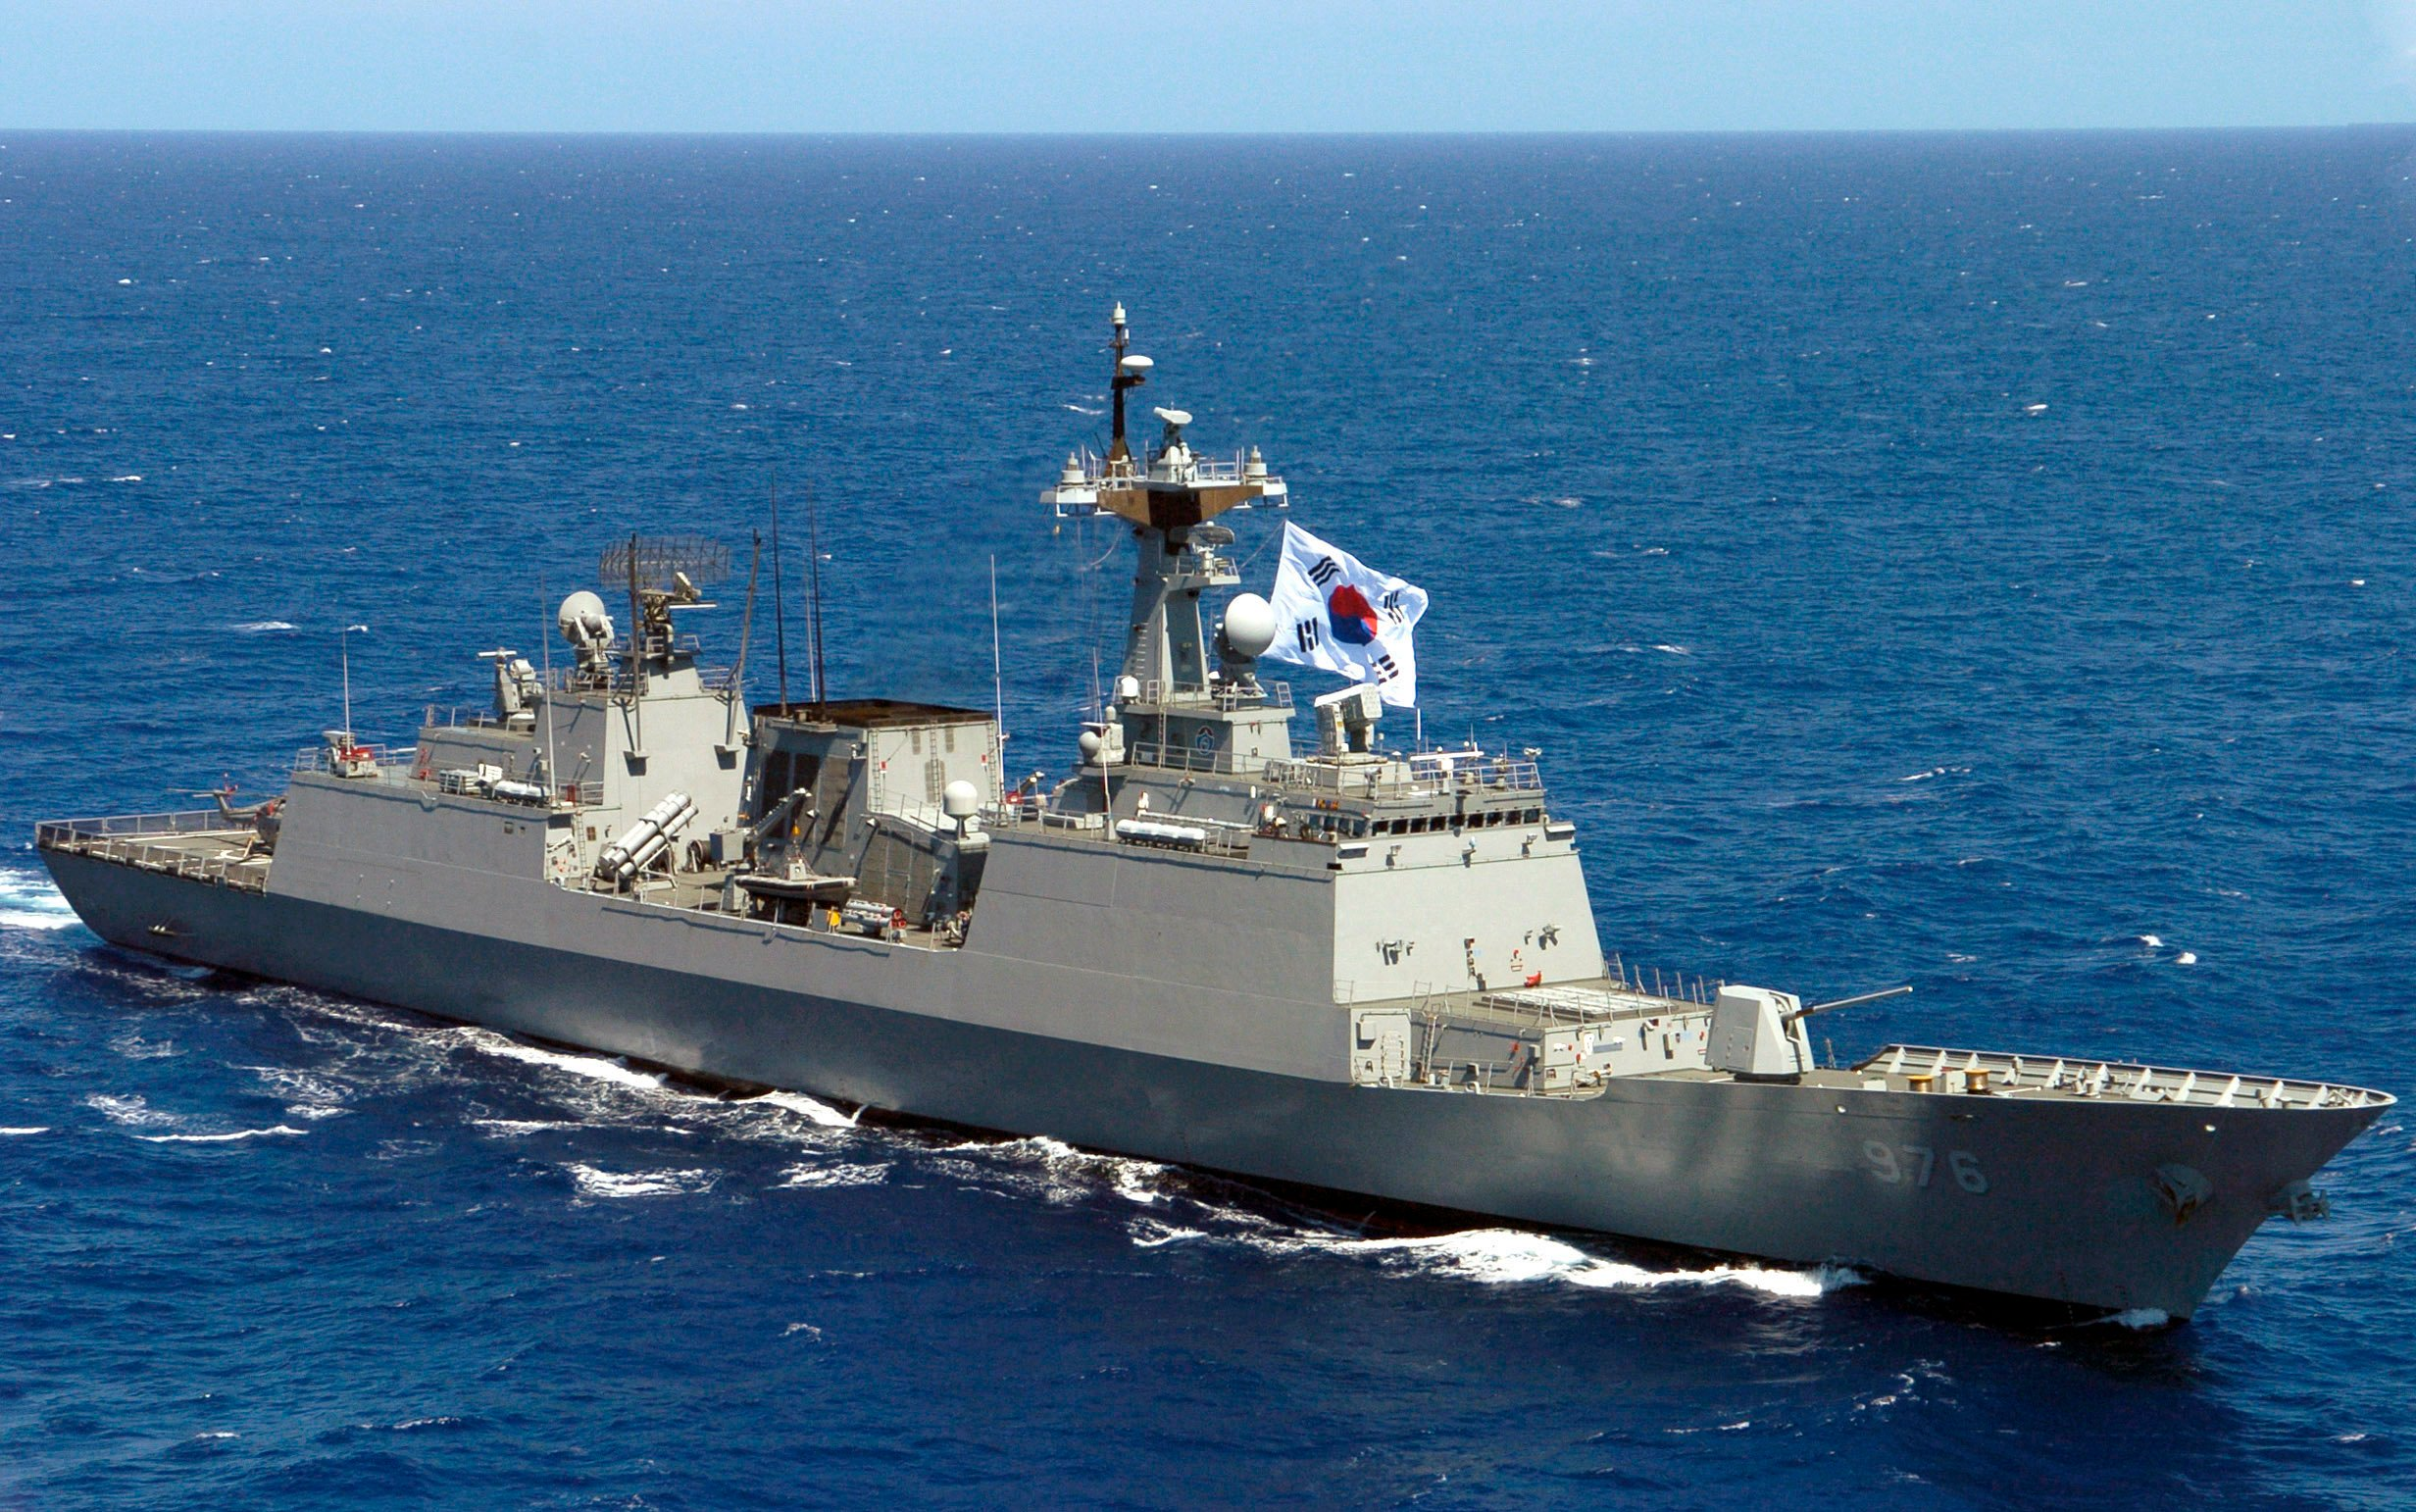 South Korean Navy destroyer Munmu the Great (DDH-976) in 2006. US Navy Photo